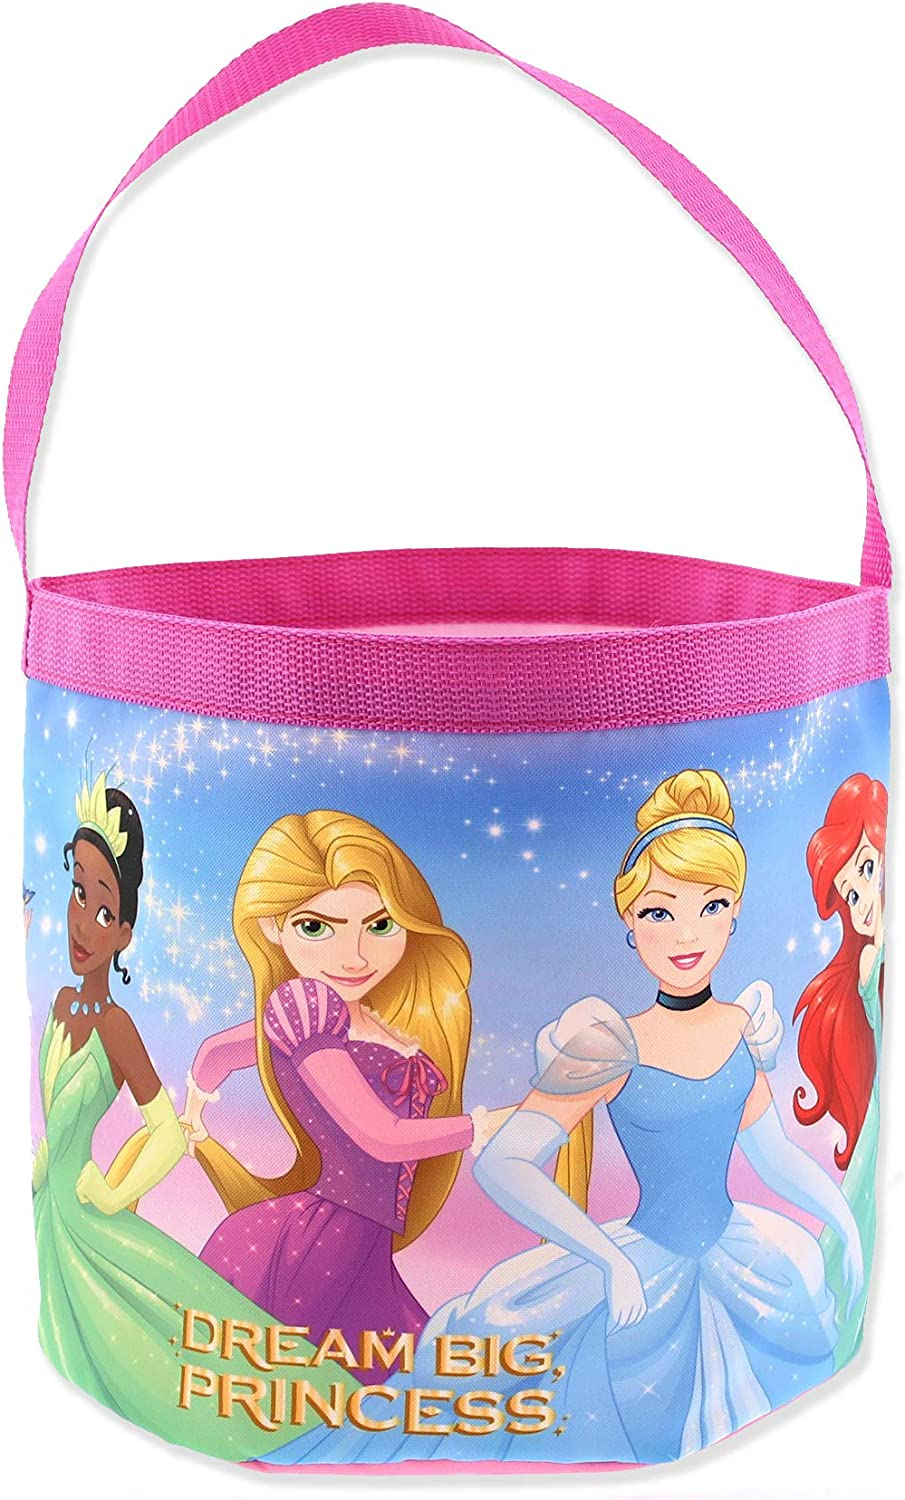 Disney Princess Girls Collapsible Nylon Holiday Basket Bucket Toy Storage Tote Bag (One Size, Pink)